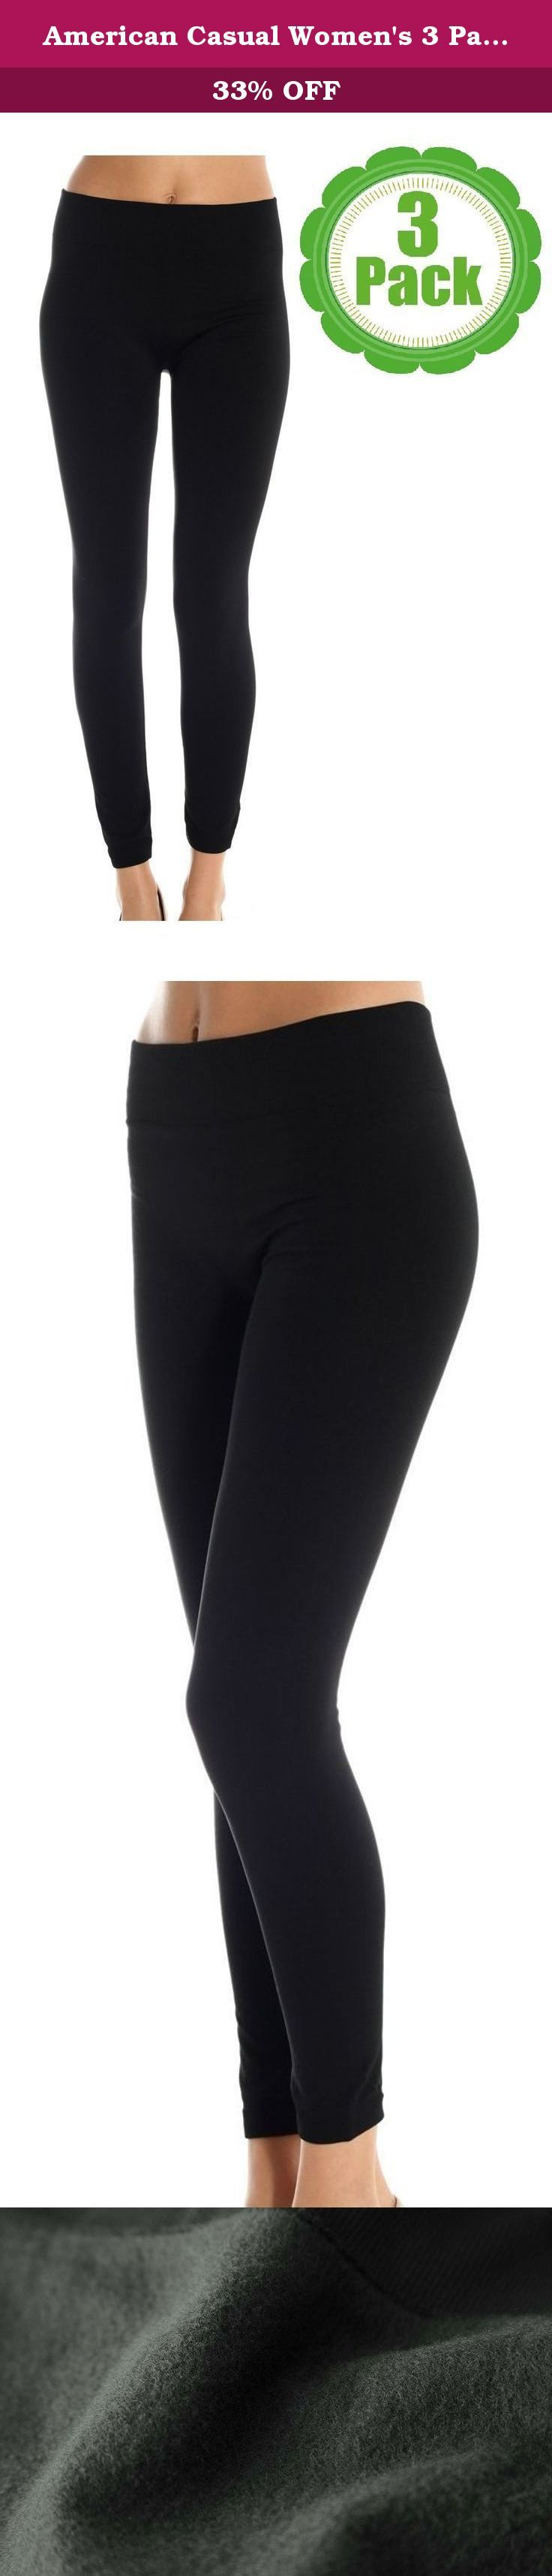 American Casual Women's 3 Pack Fleece Lined Leggings (Large/X-Large-Black ). Brave the cold weather this season with the stylish and comfortable American Casual Fleece Leggings - featuring a soft, fleece lined interior, a high-waist compression top, and a variety of bright colors, our cozy fleece leggings contour your body without adding excess bulk.